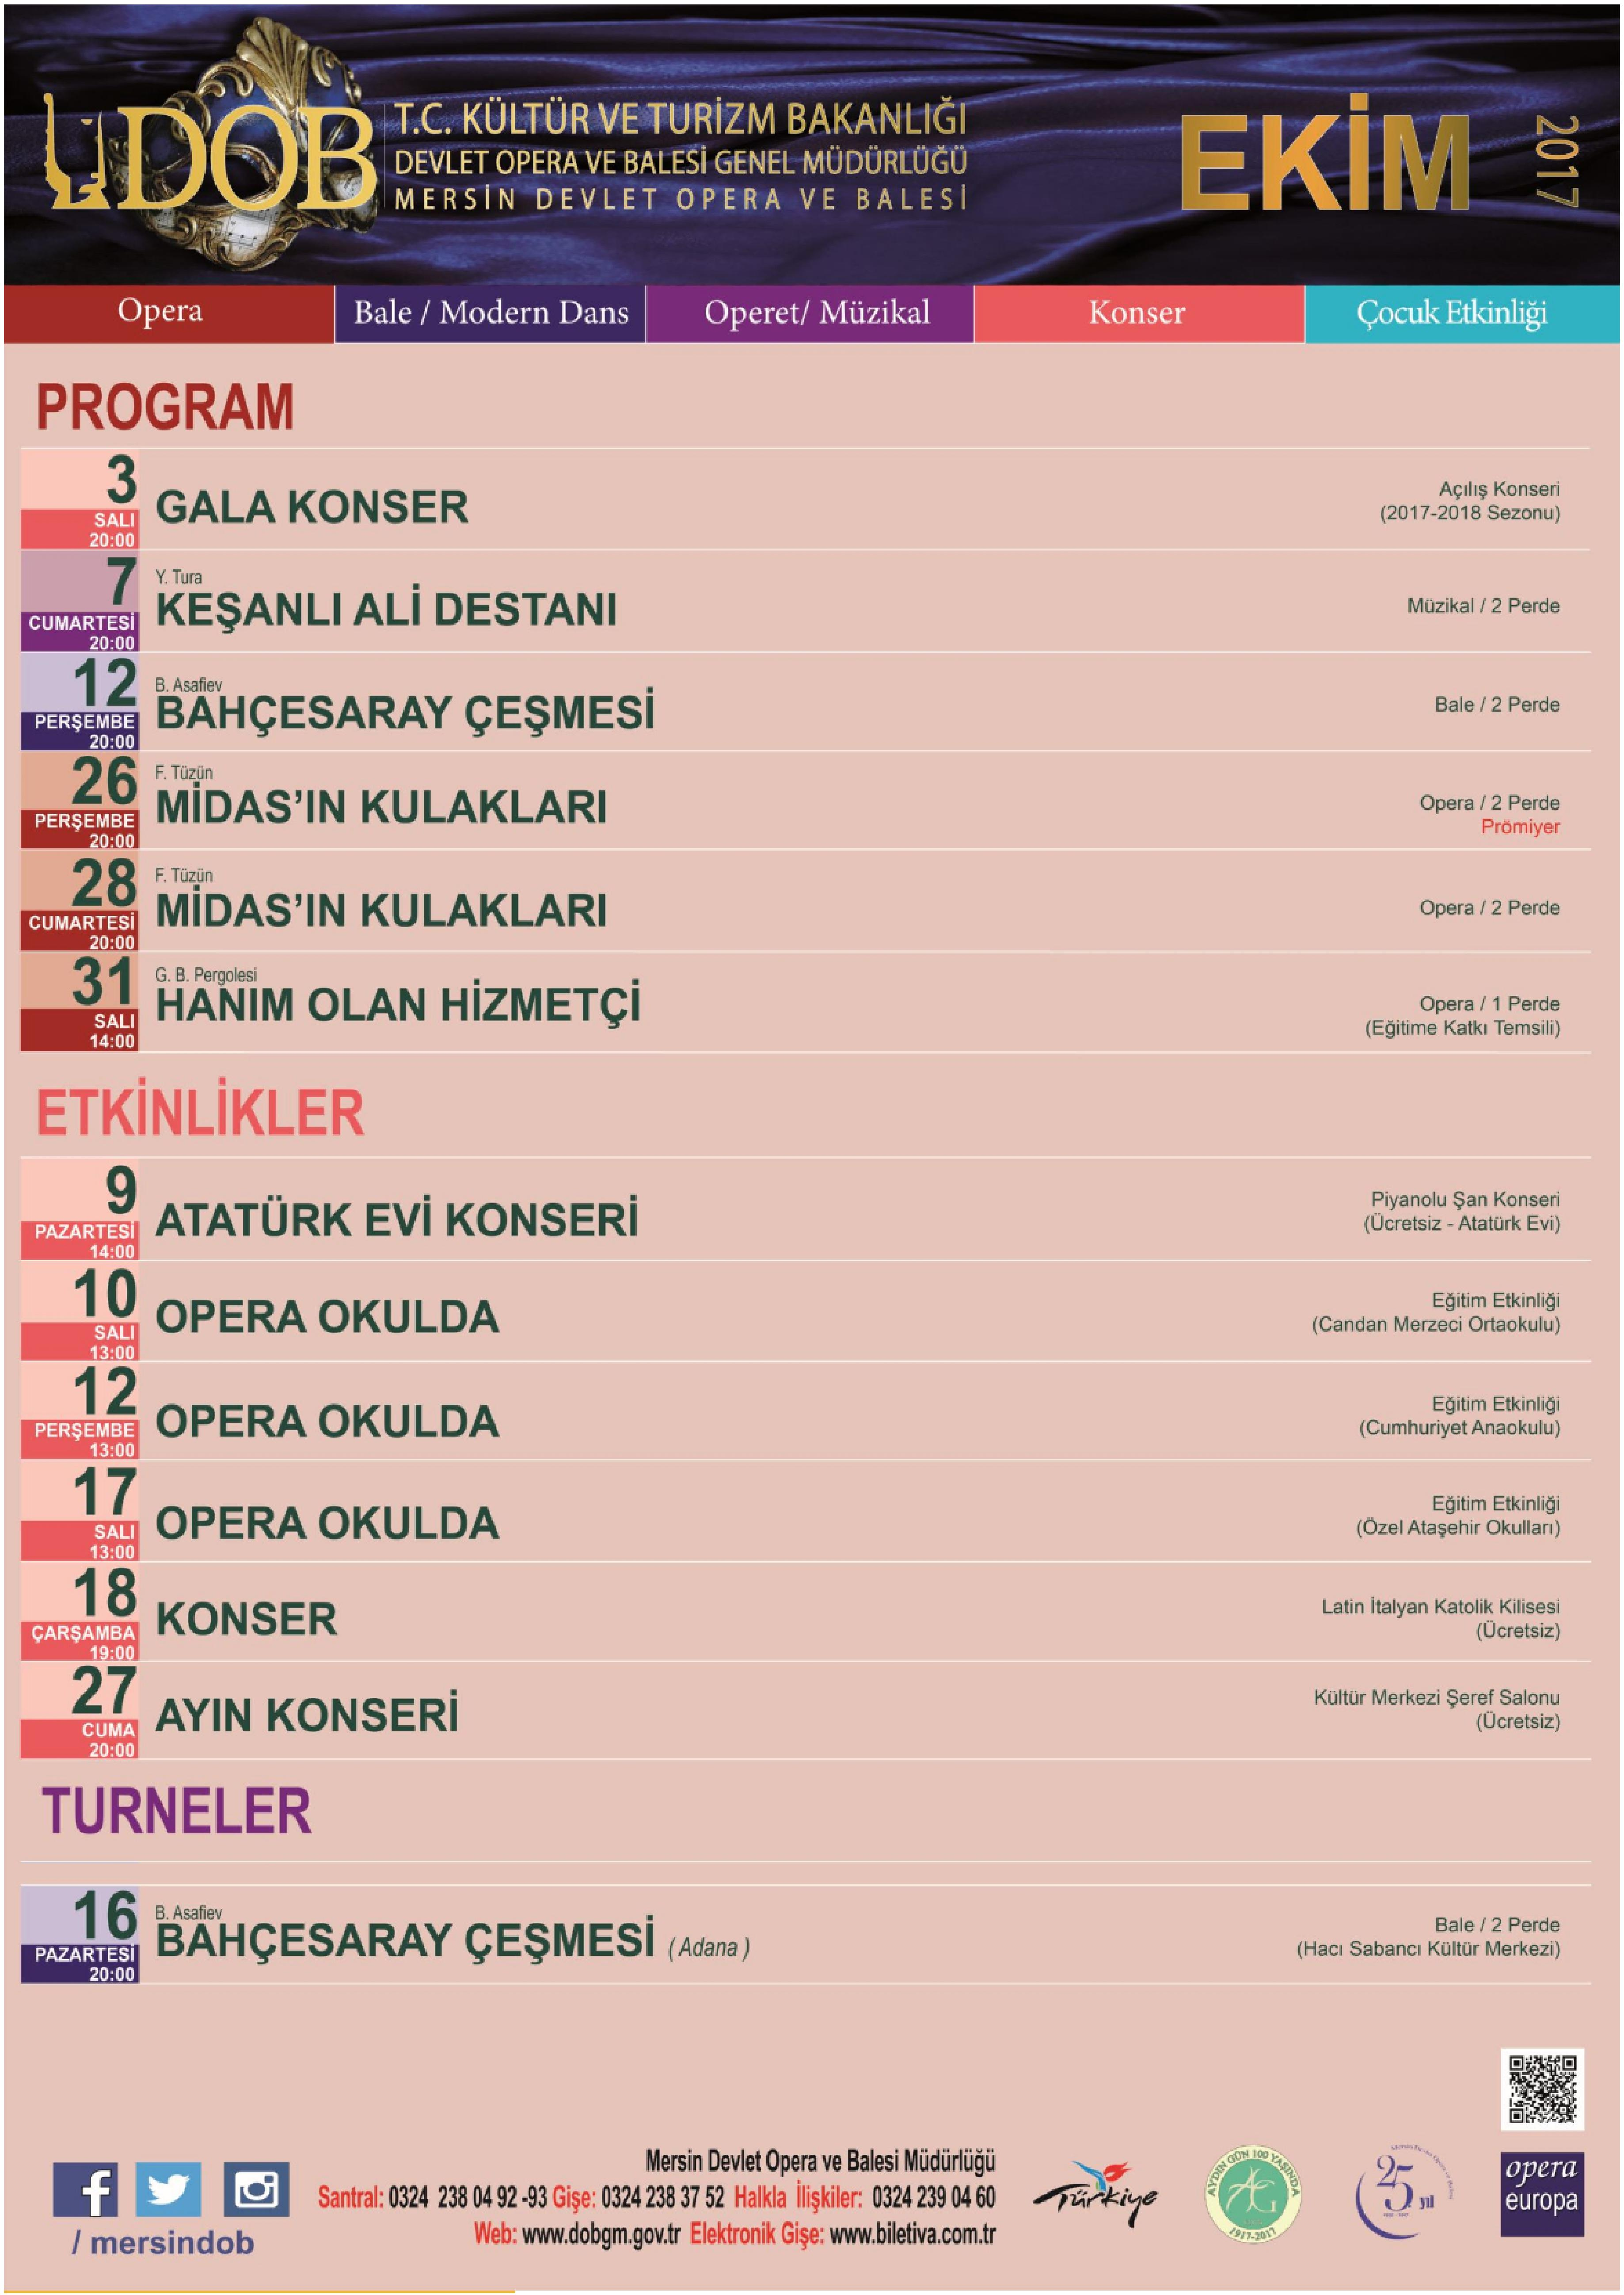 Mersin State Opera and Ballet – The Program of the October Month of 2017